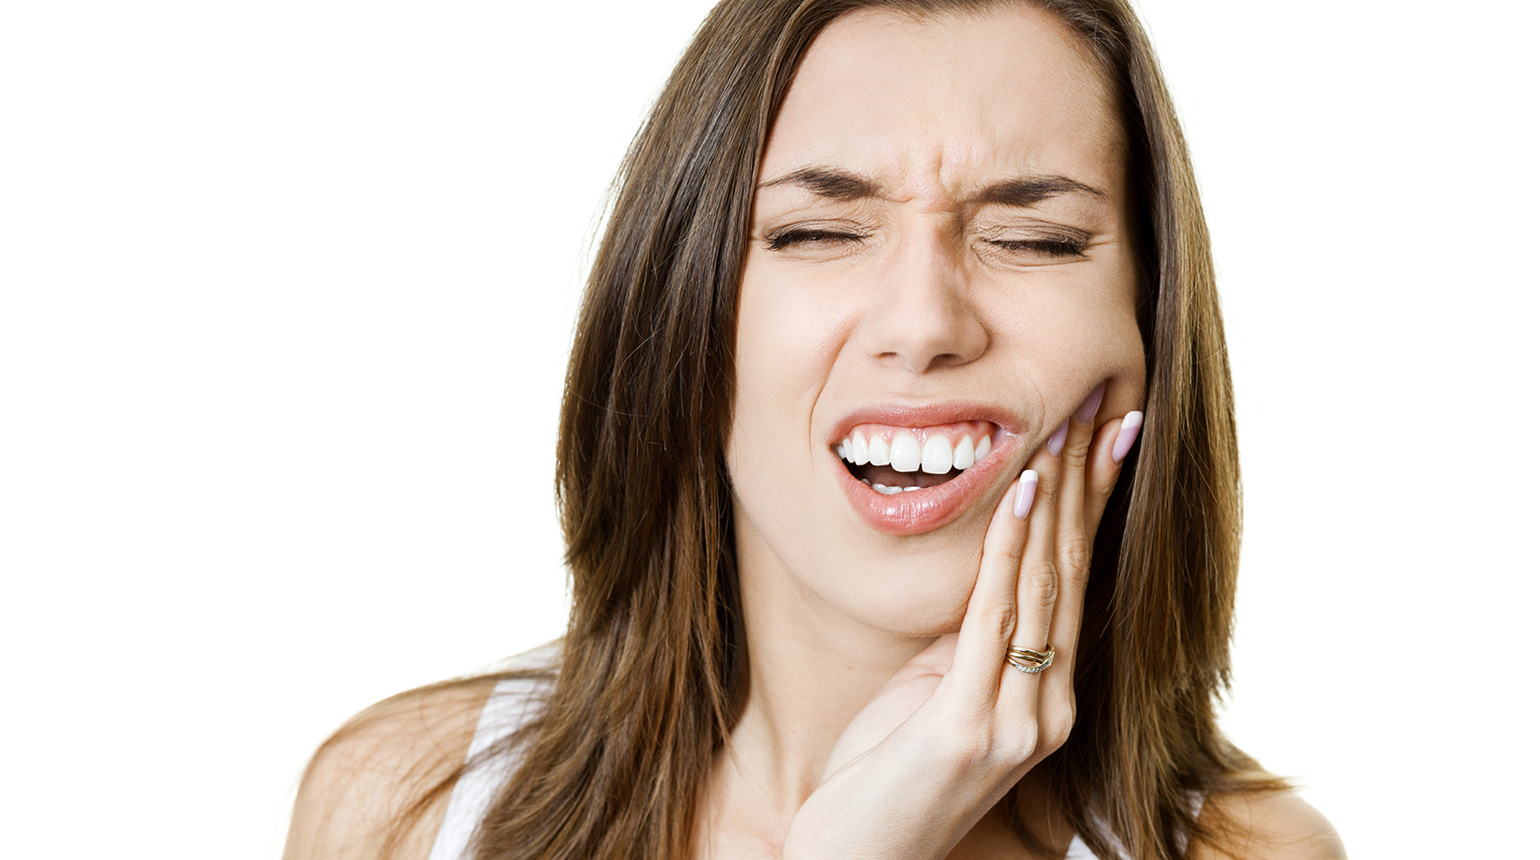 How to relieve pain caused by braces